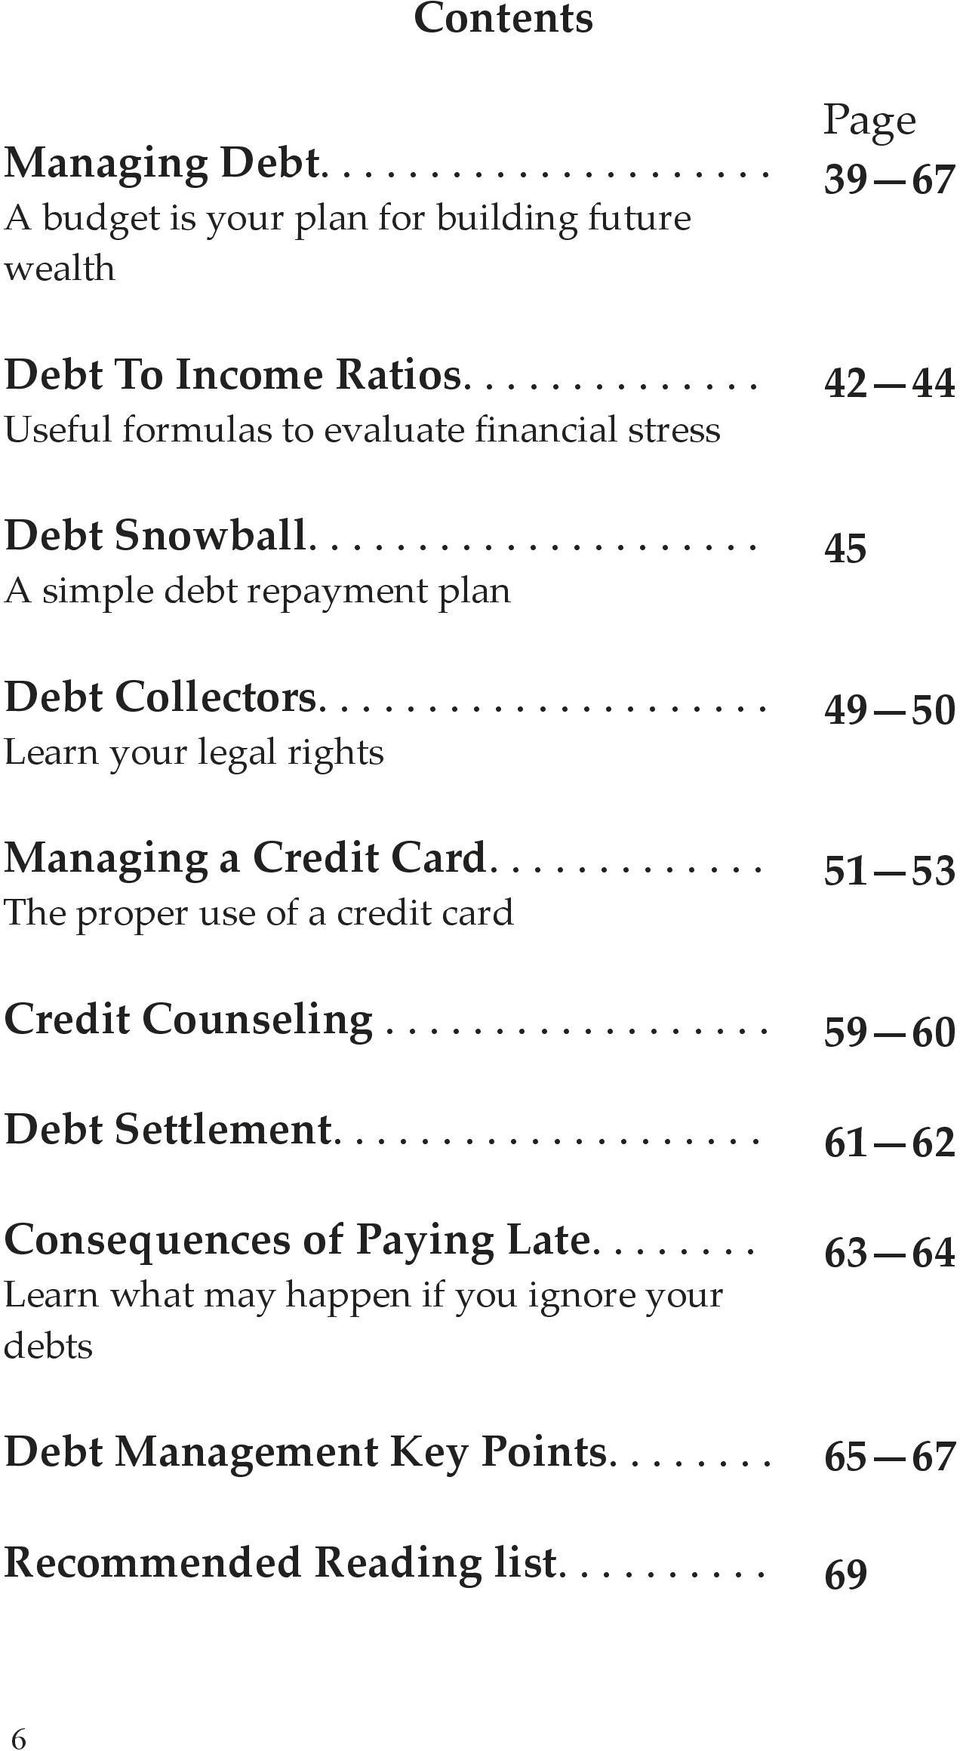 .................... Learn your legal rights Managing a Credit Card............. The proper use of a credit card Credit Counseling.................. Debt Settlement.